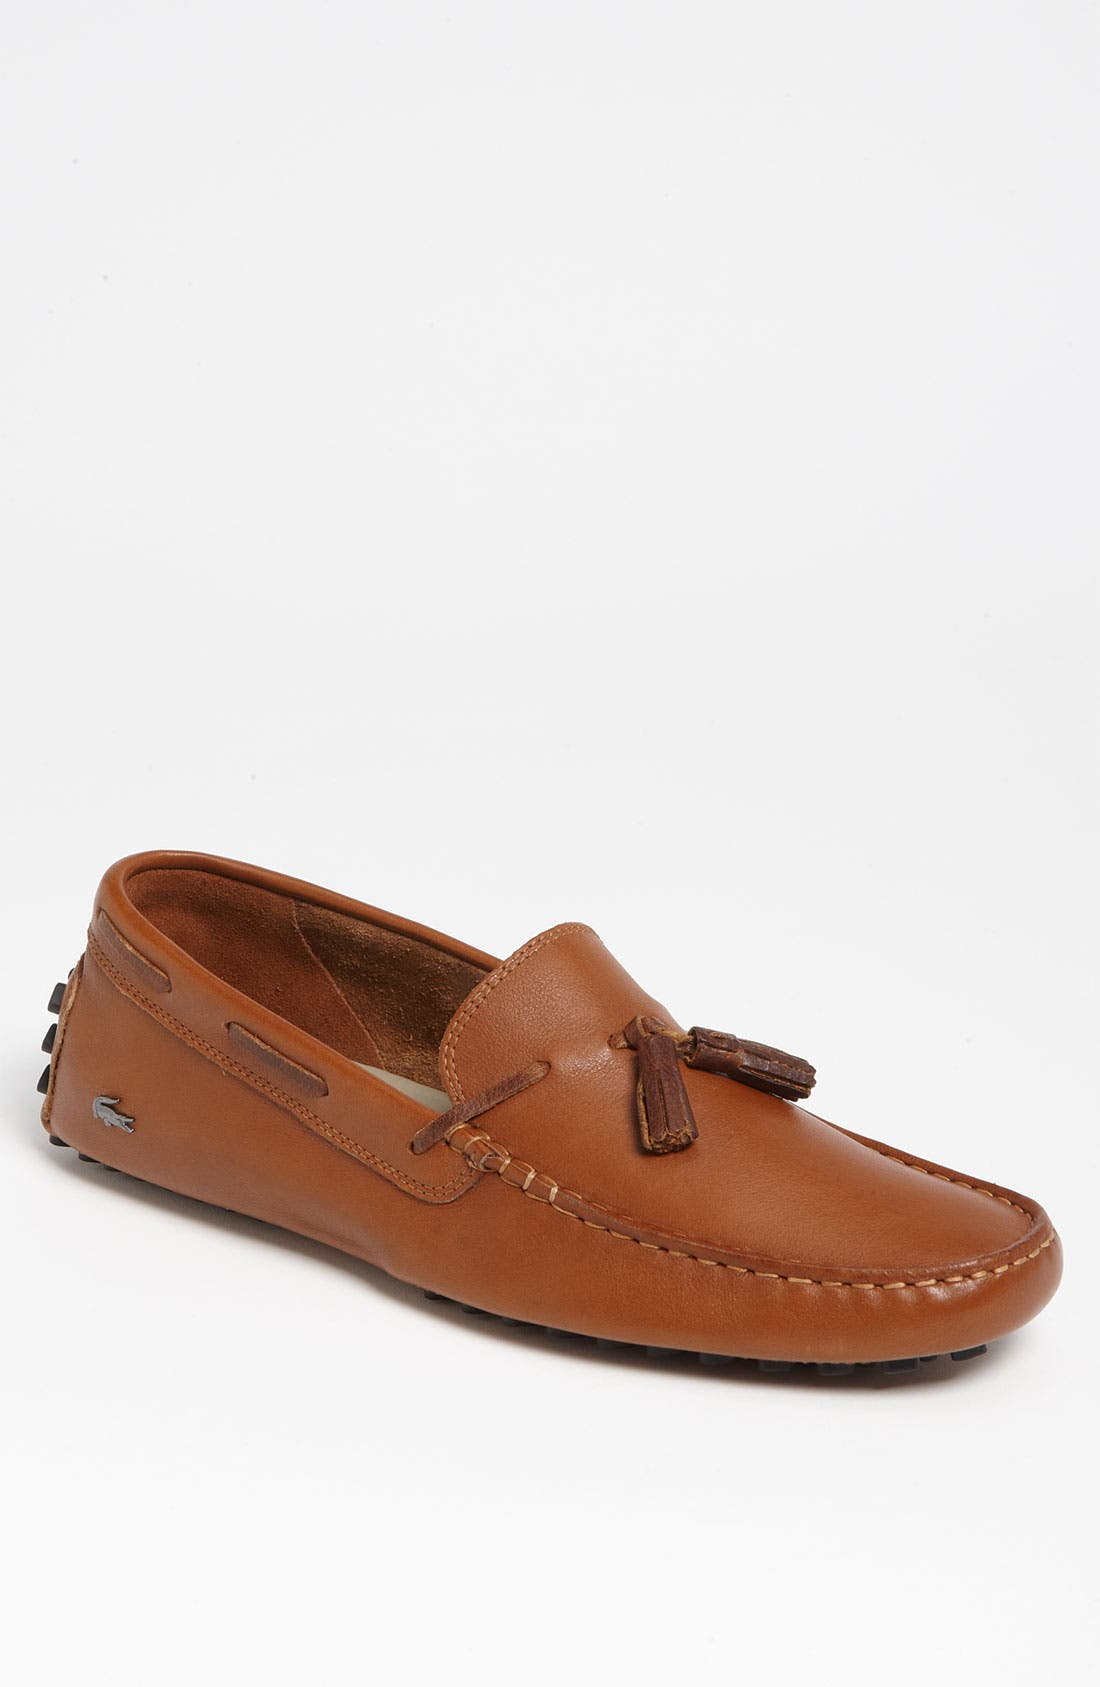 Main Image - Lacoste 'Concours Tassel 3' Loafer